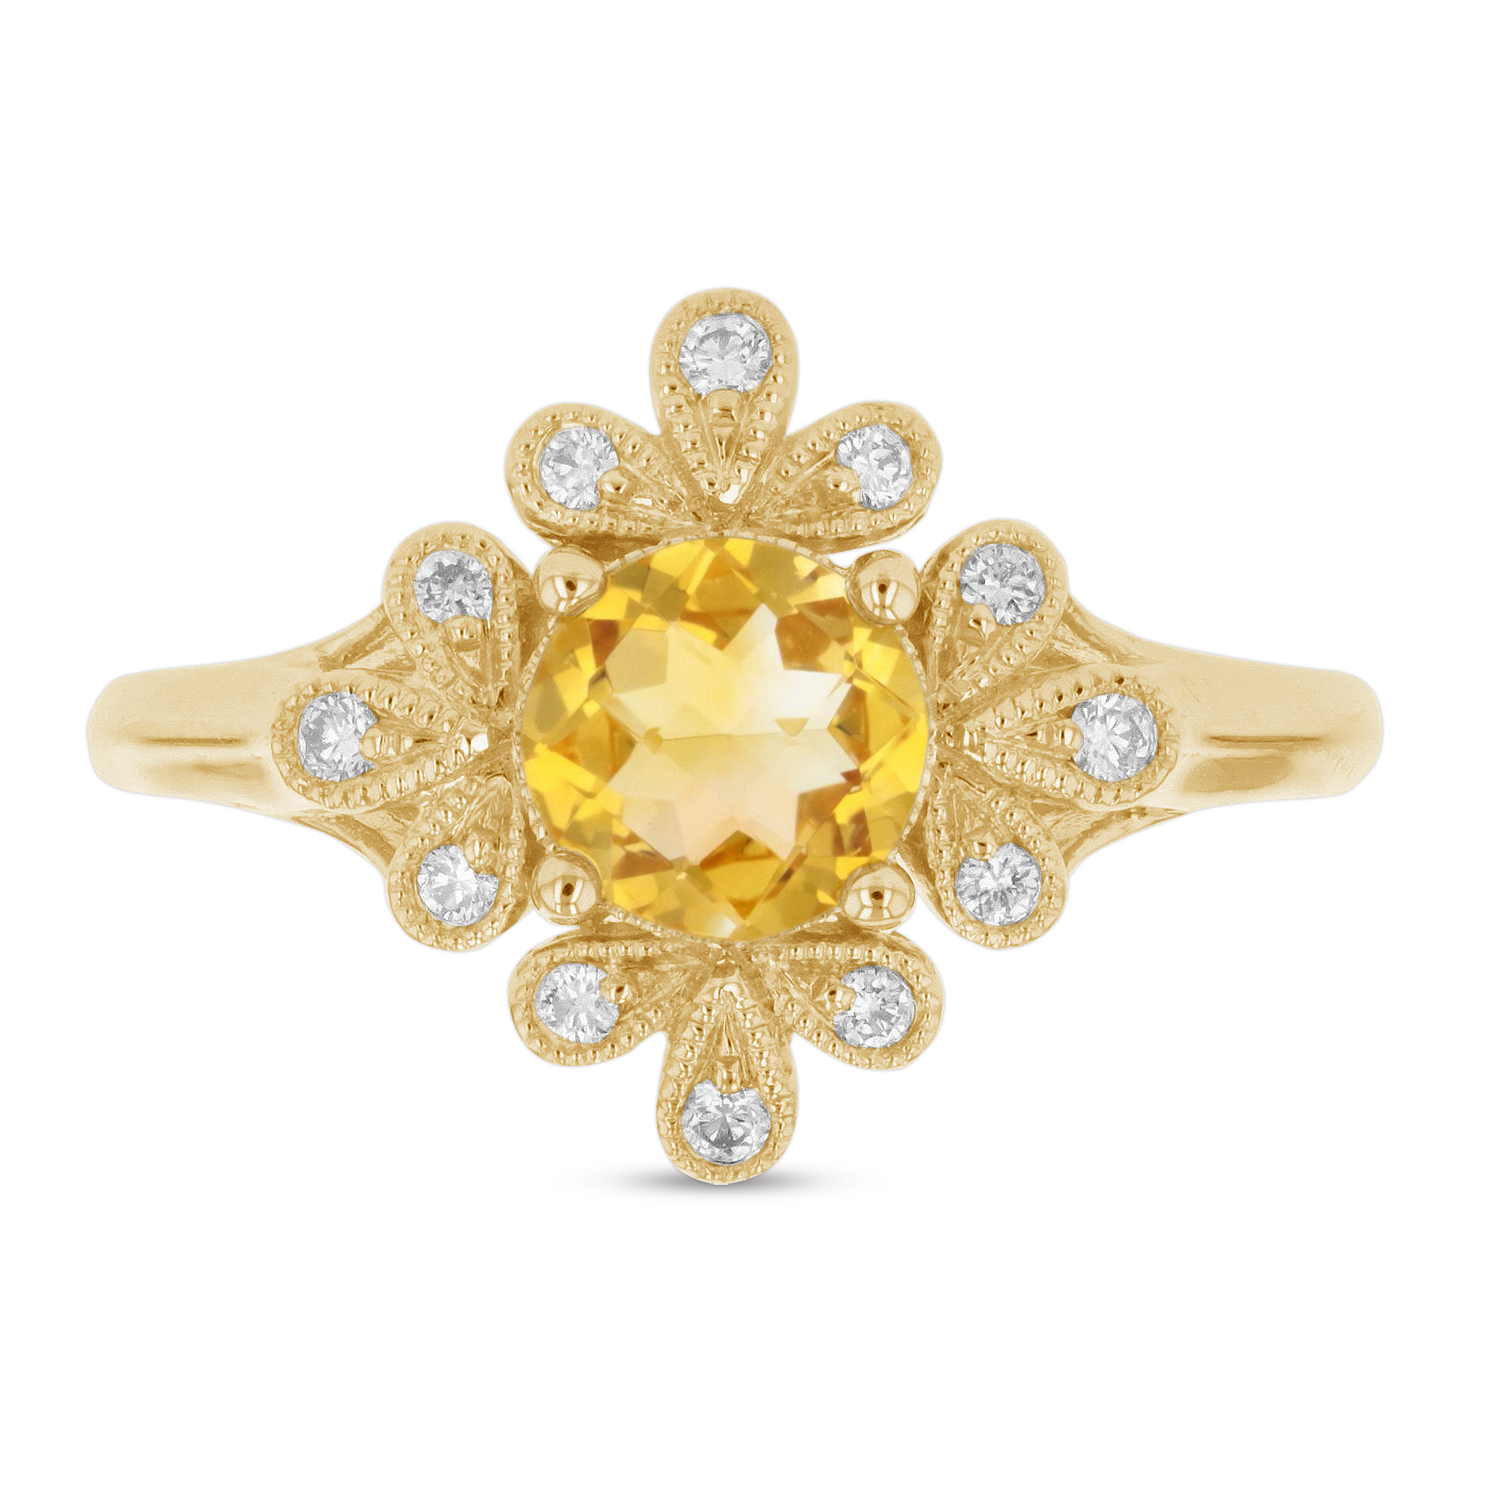 View 0.84ctw Diamond and Citrin Ring in 14k Yellow Gold